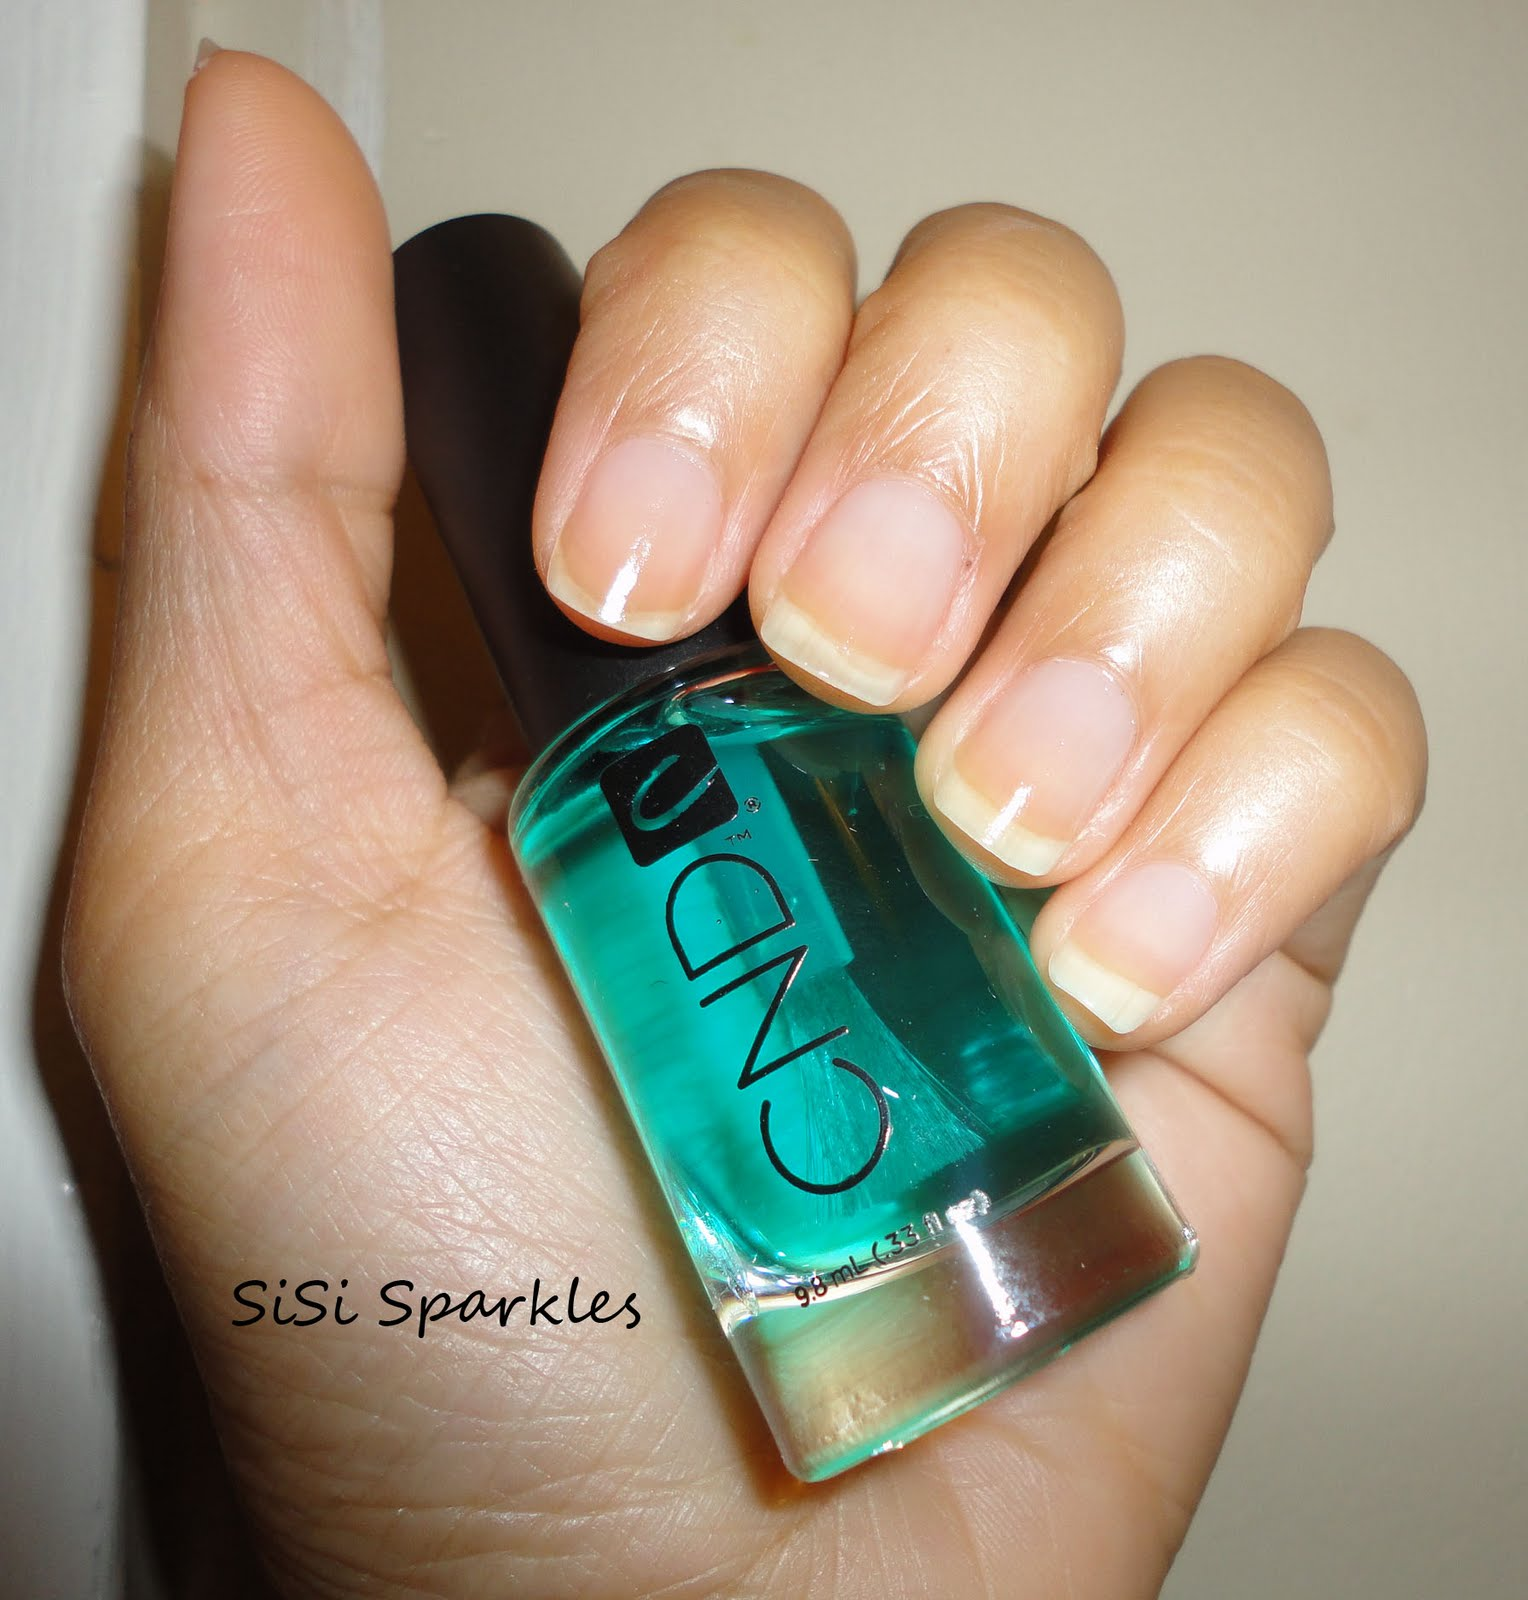 I Also Did Not Notice Any Yellowing Of My Nails After Wearing This Would Definitely Recommend Base Coat For The Price And Quality